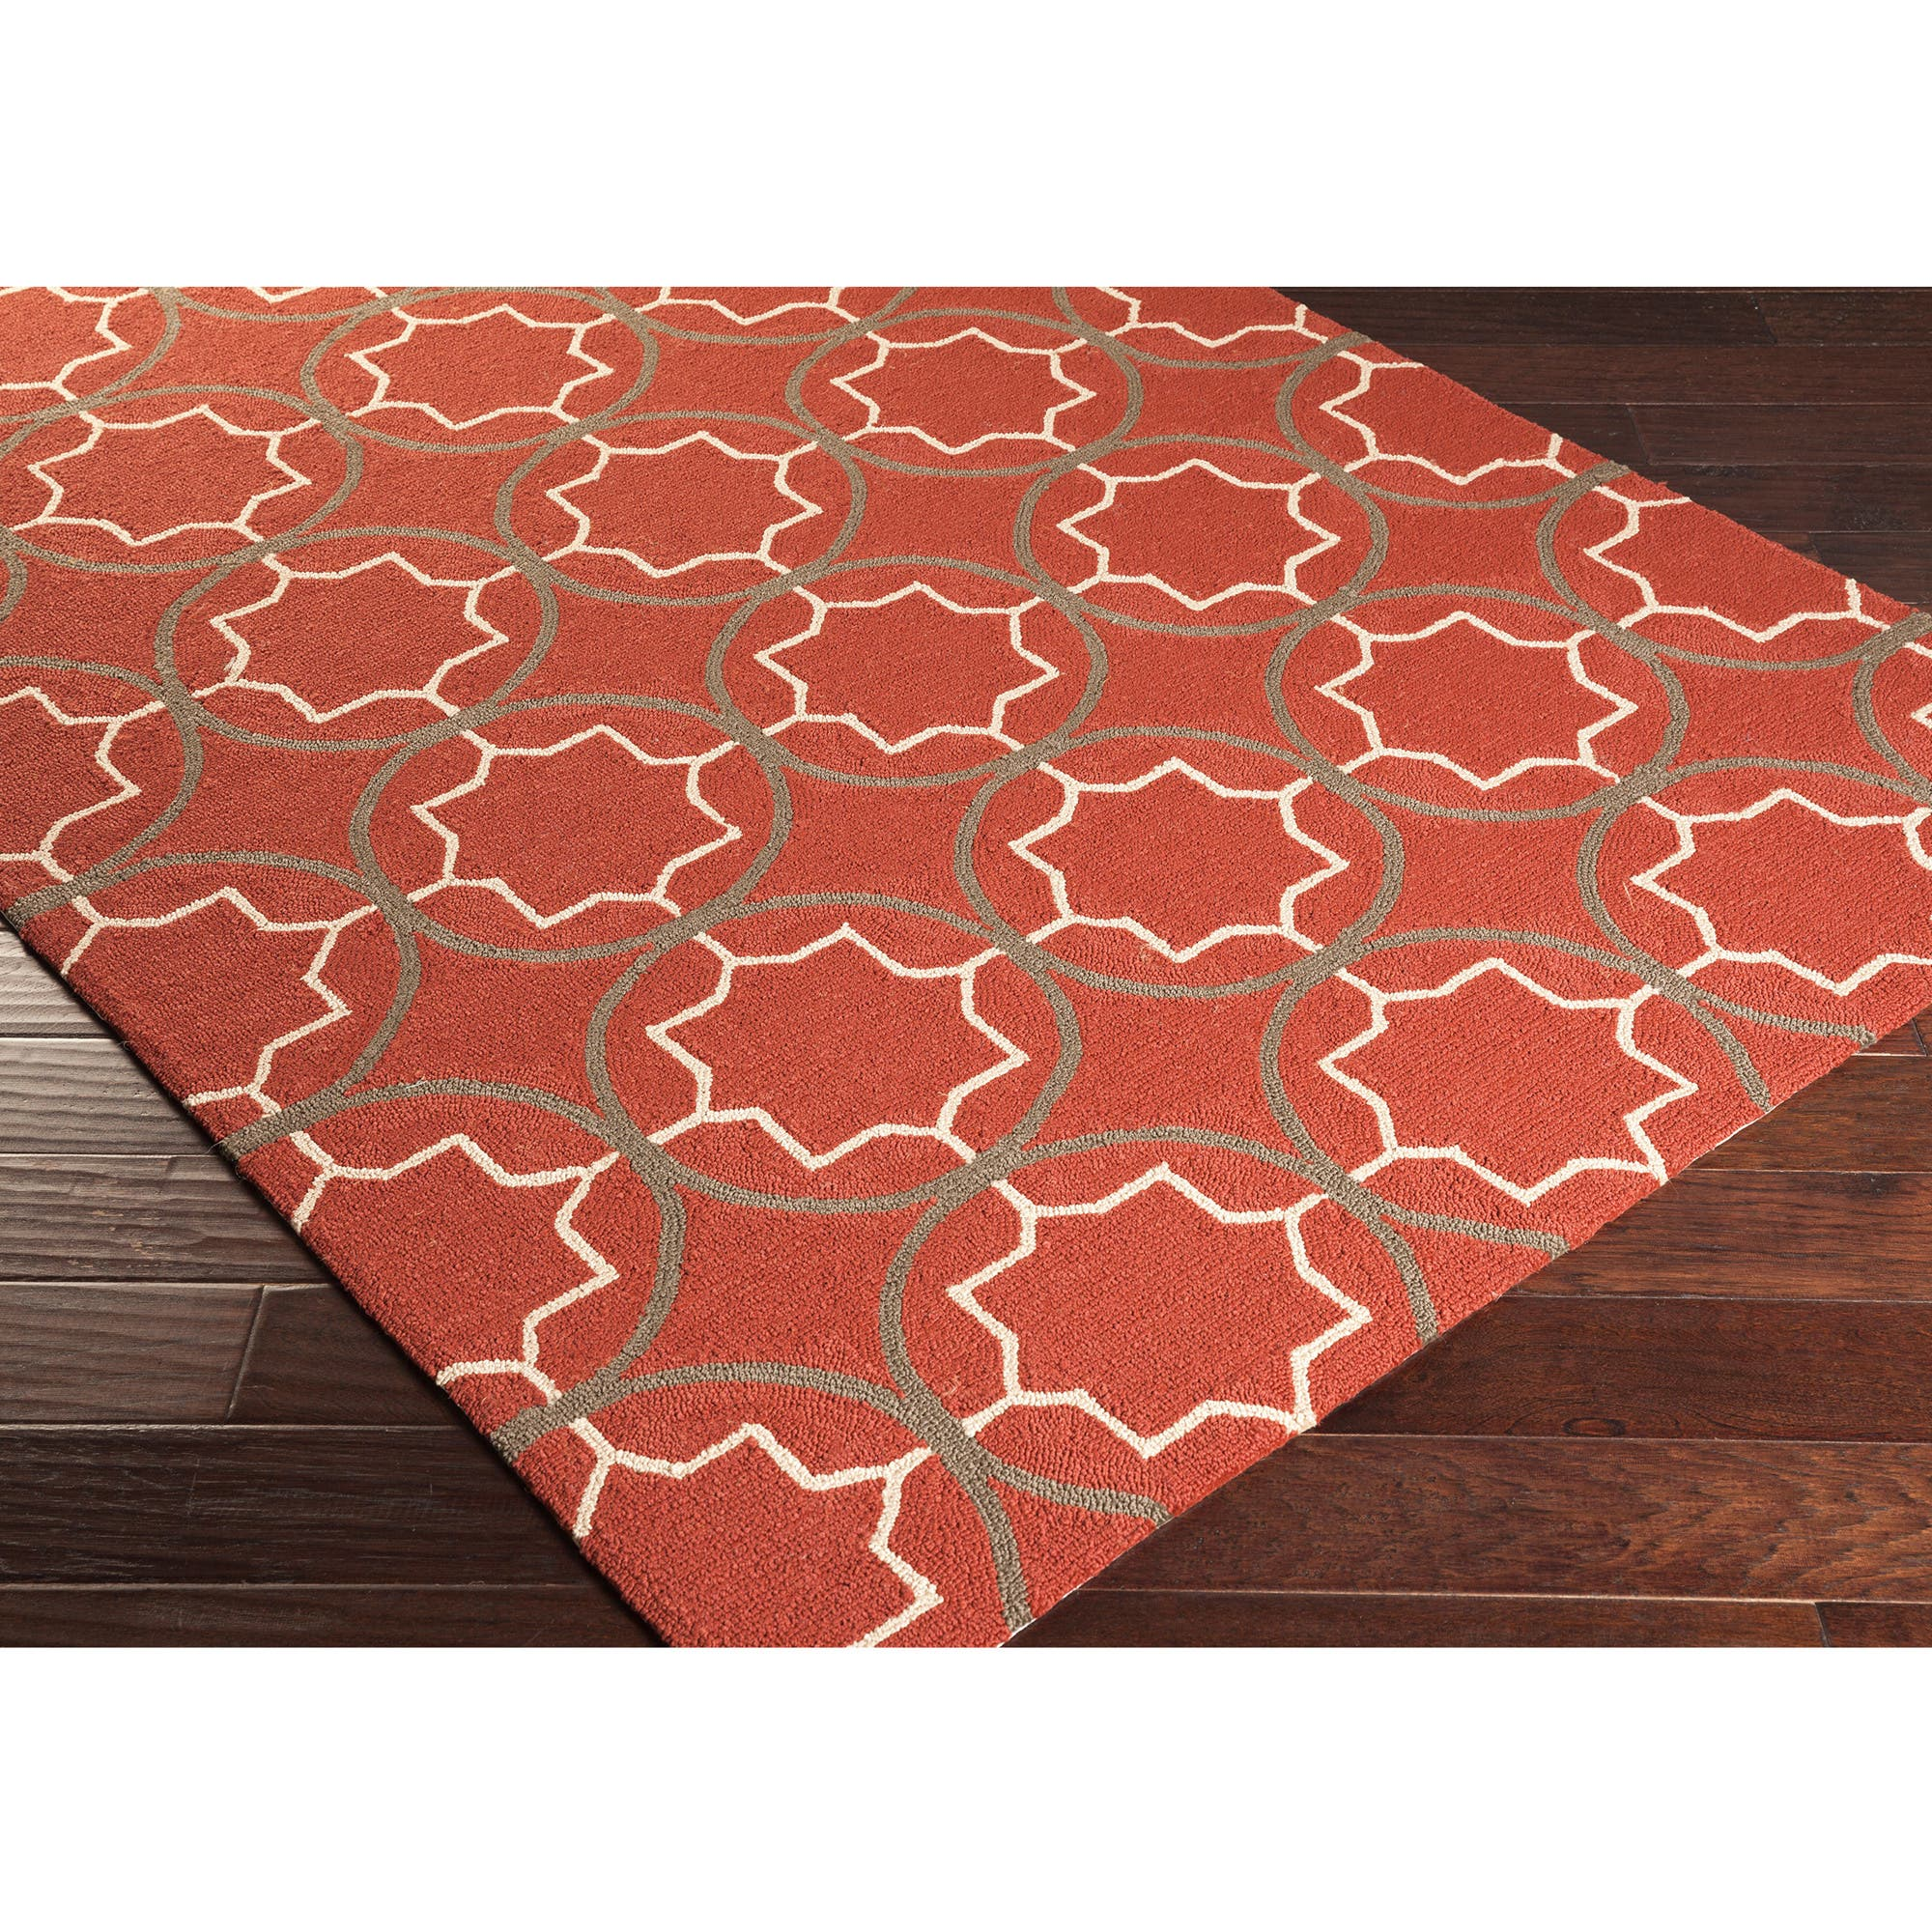 Outdoor Rug 7 X 10: 7x9 - 10x14 Rugs For Less